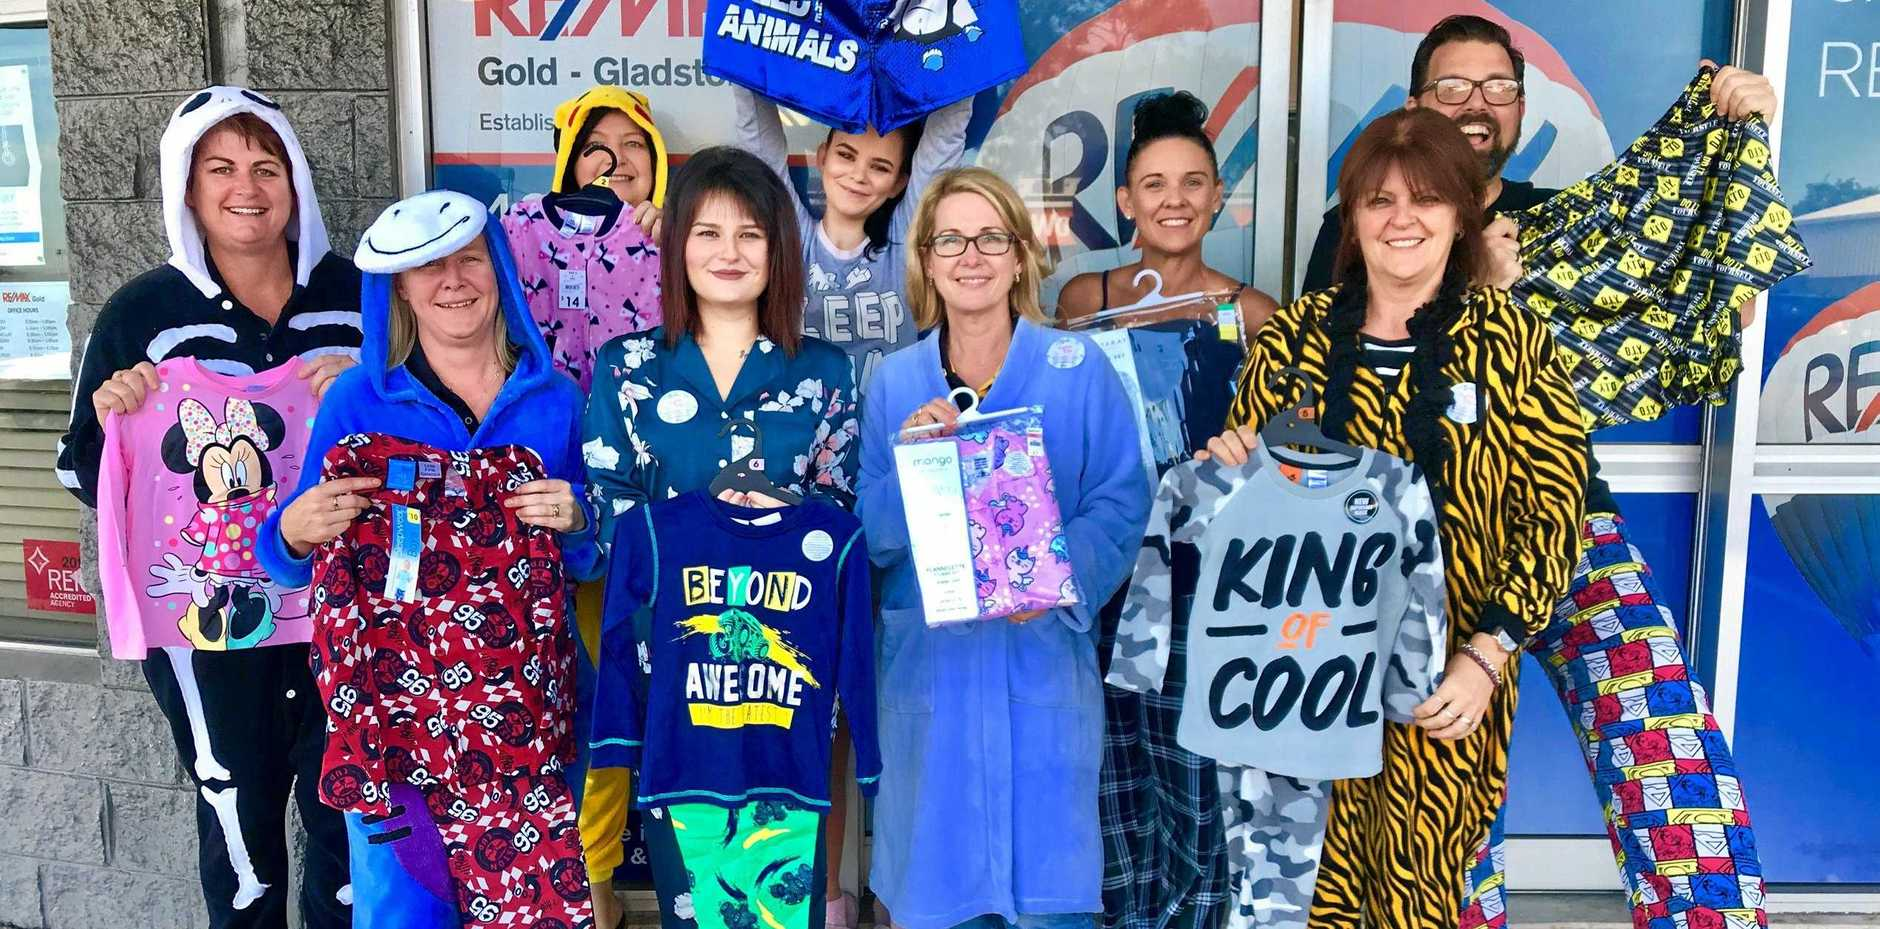 RE/MAX Gold Gladstone wear pyjamas to work for Pyjama Day 2018 for The Pyjama Foundation